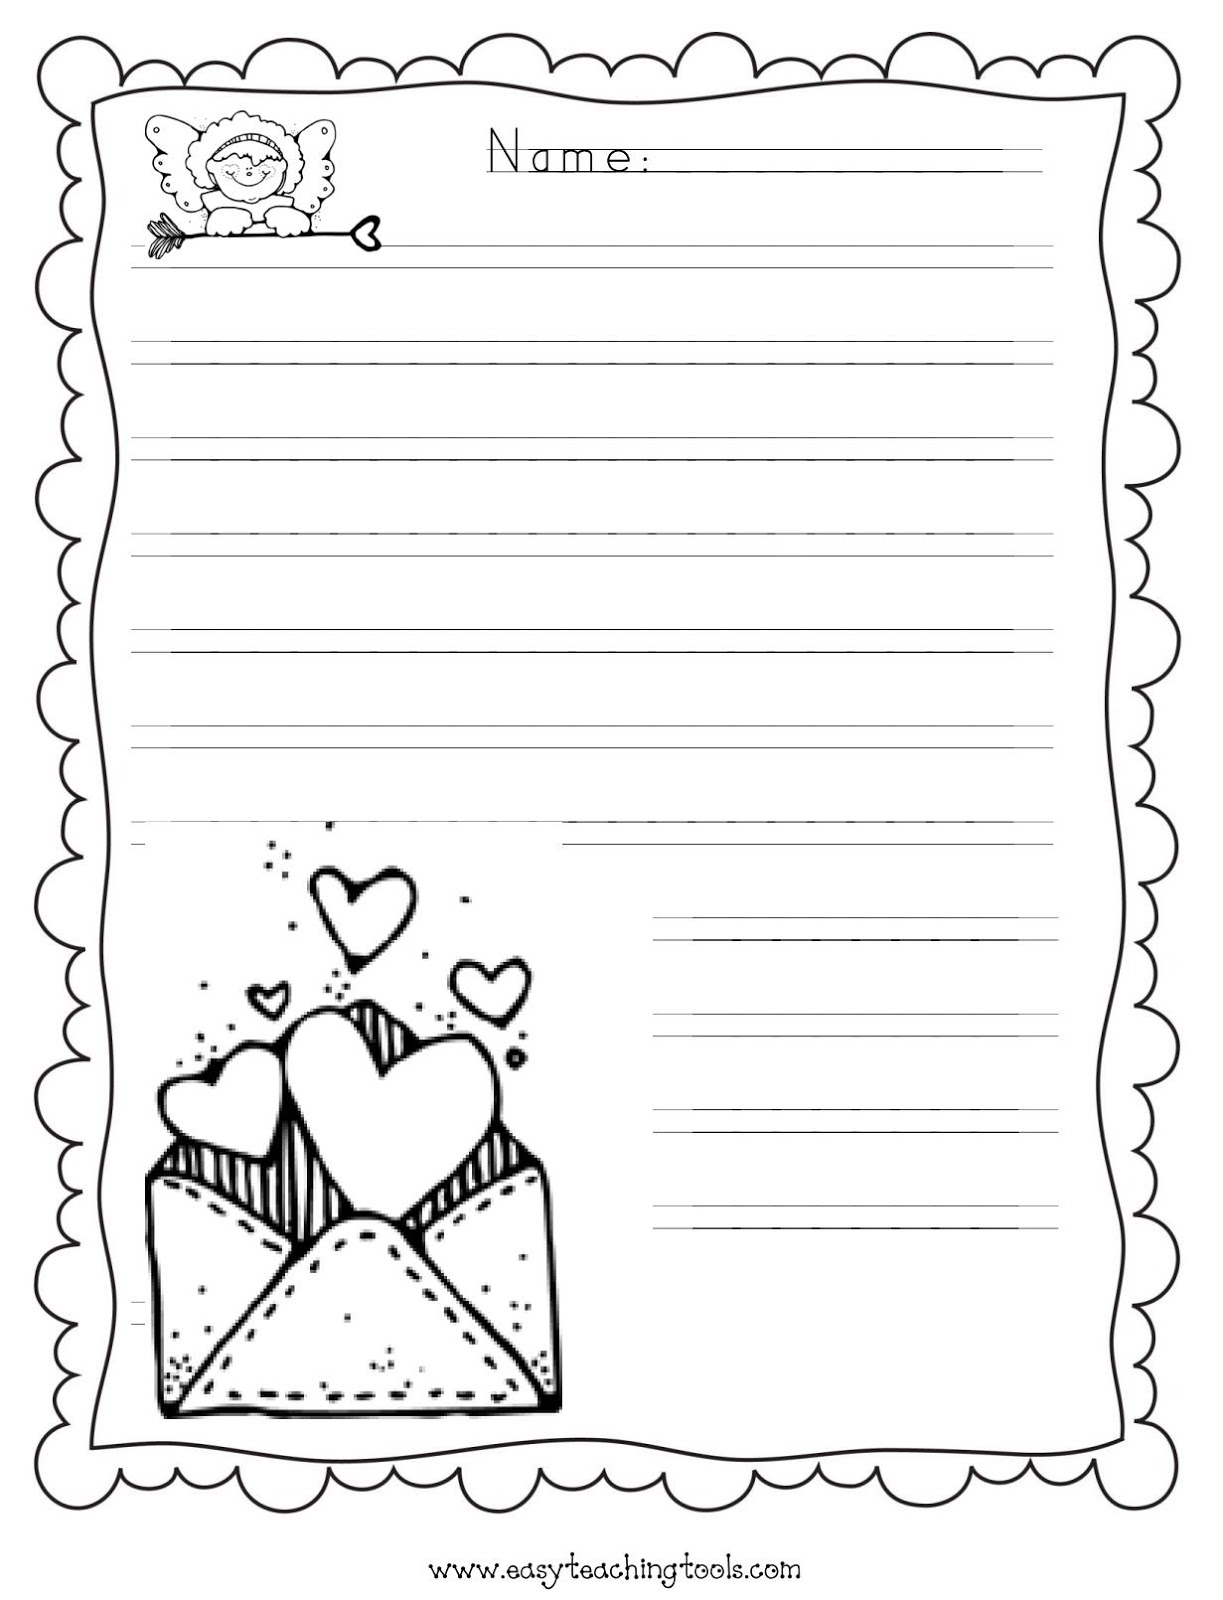 Handwriting Without Tears Letter Templates